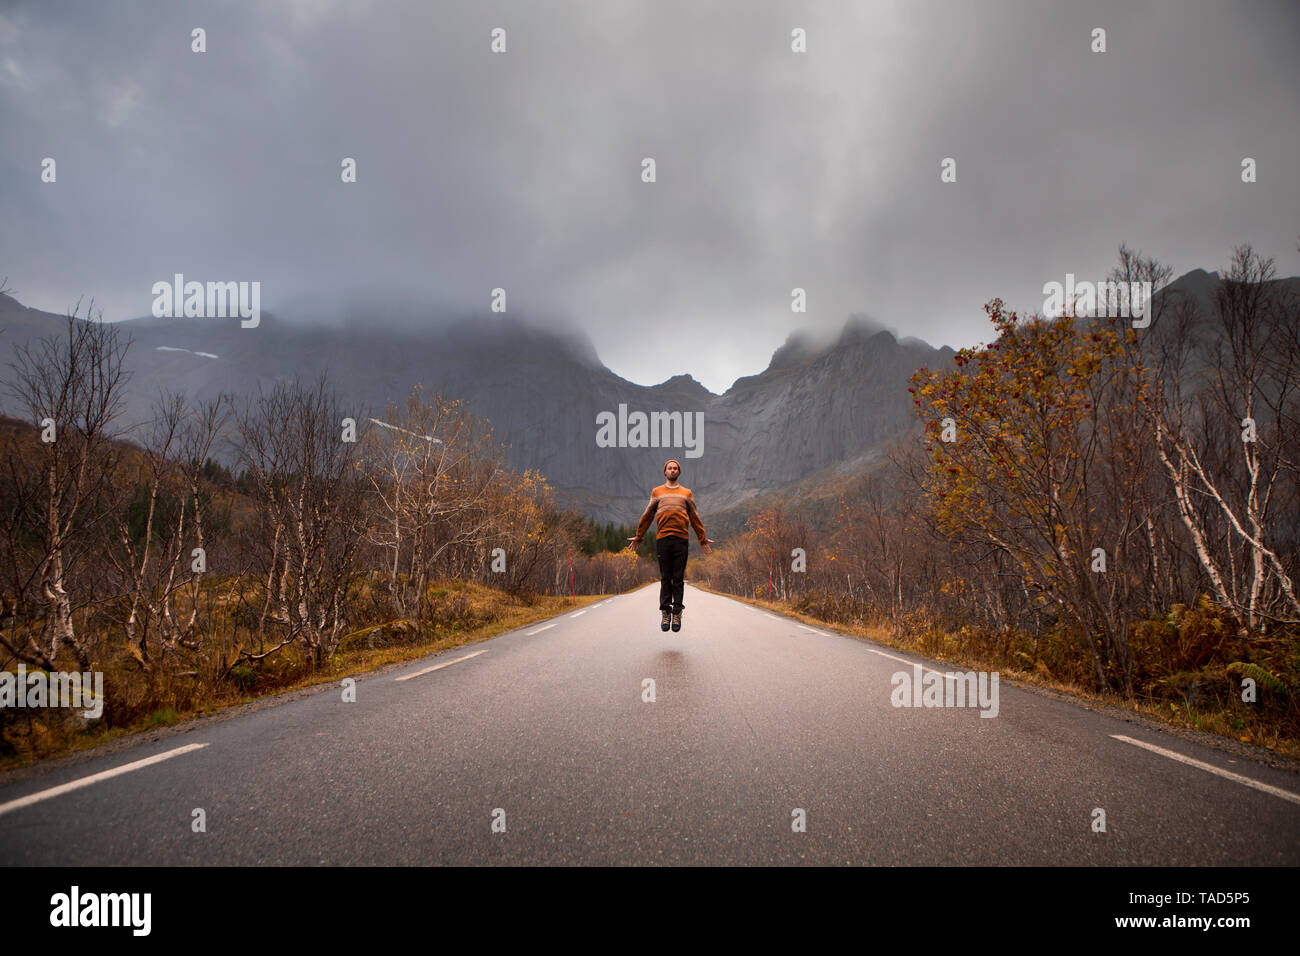 Norway, Lofoten Islands, man jumping on empty road surrounded by rock face - Stock Image